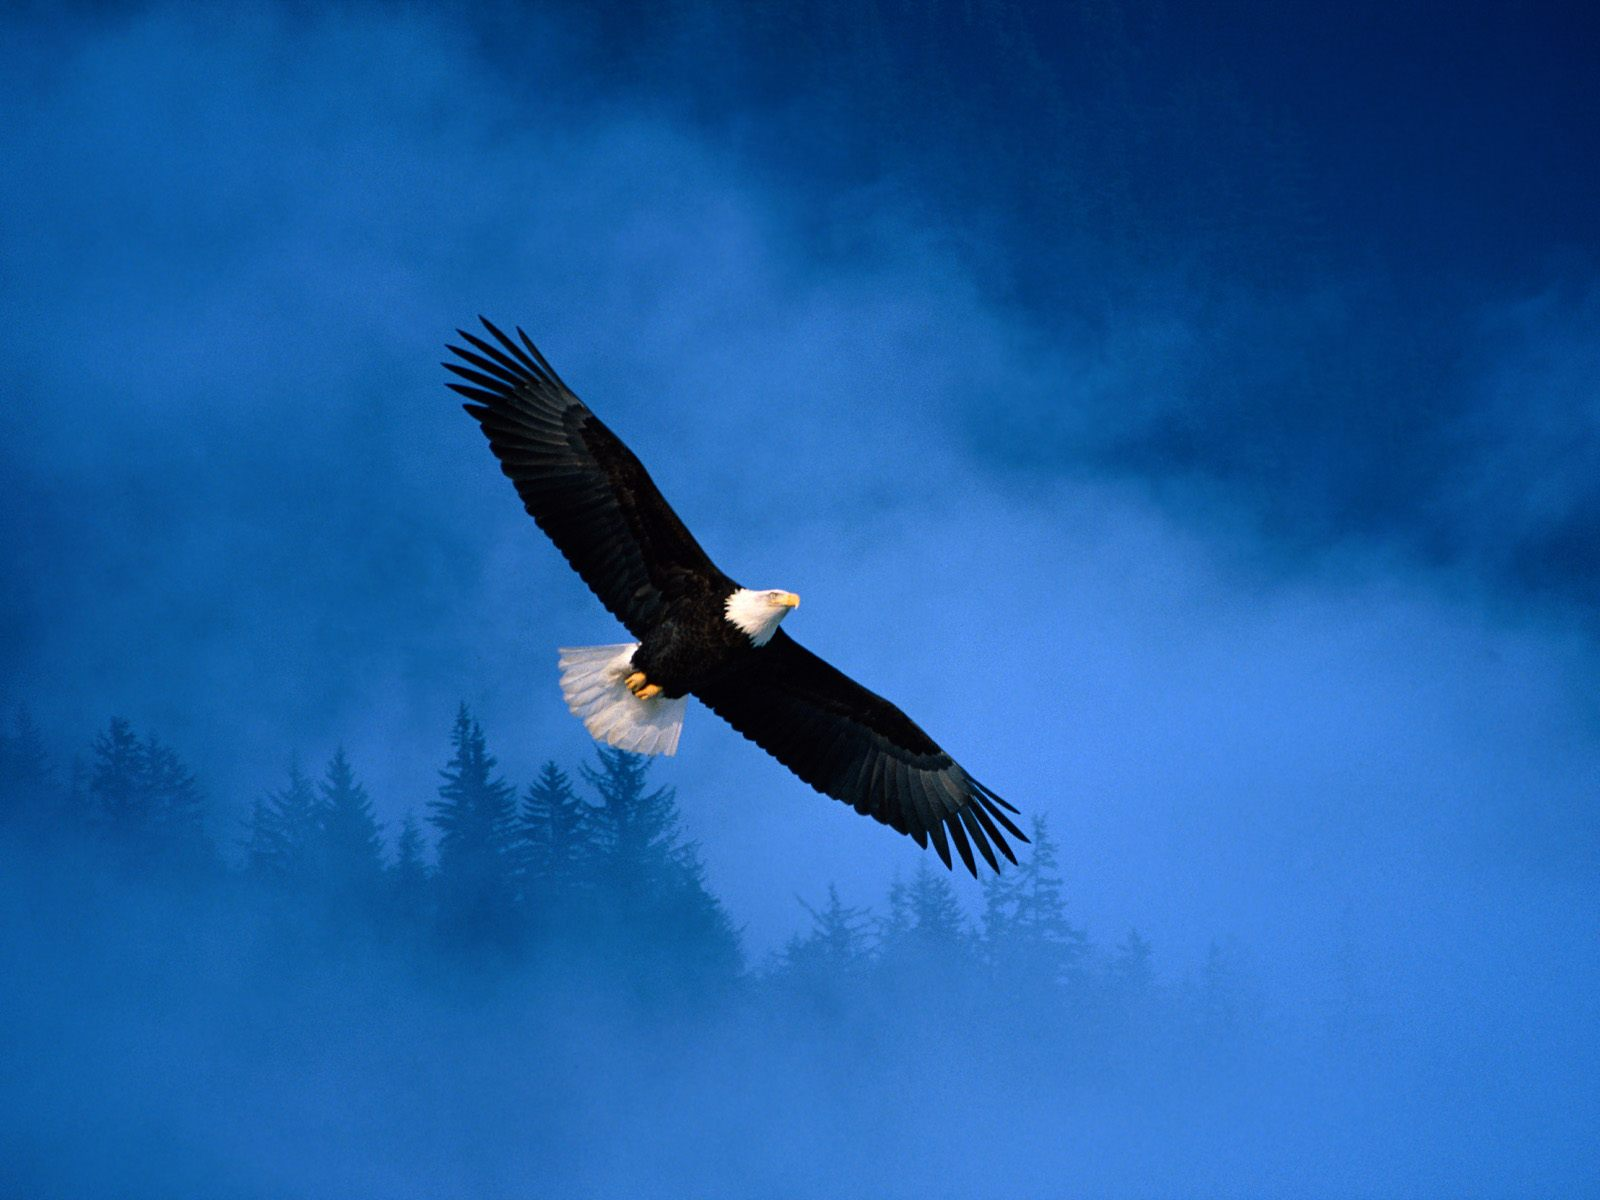 http://2.bp.blogspot.com/_wk_IKE_3S3g/TFBOsJT_7GI/AAAAAAAAADg/MrMdUdUsAU8/s1600/flight-of-freedom-bald-eagle-alaska-pictures.jpg